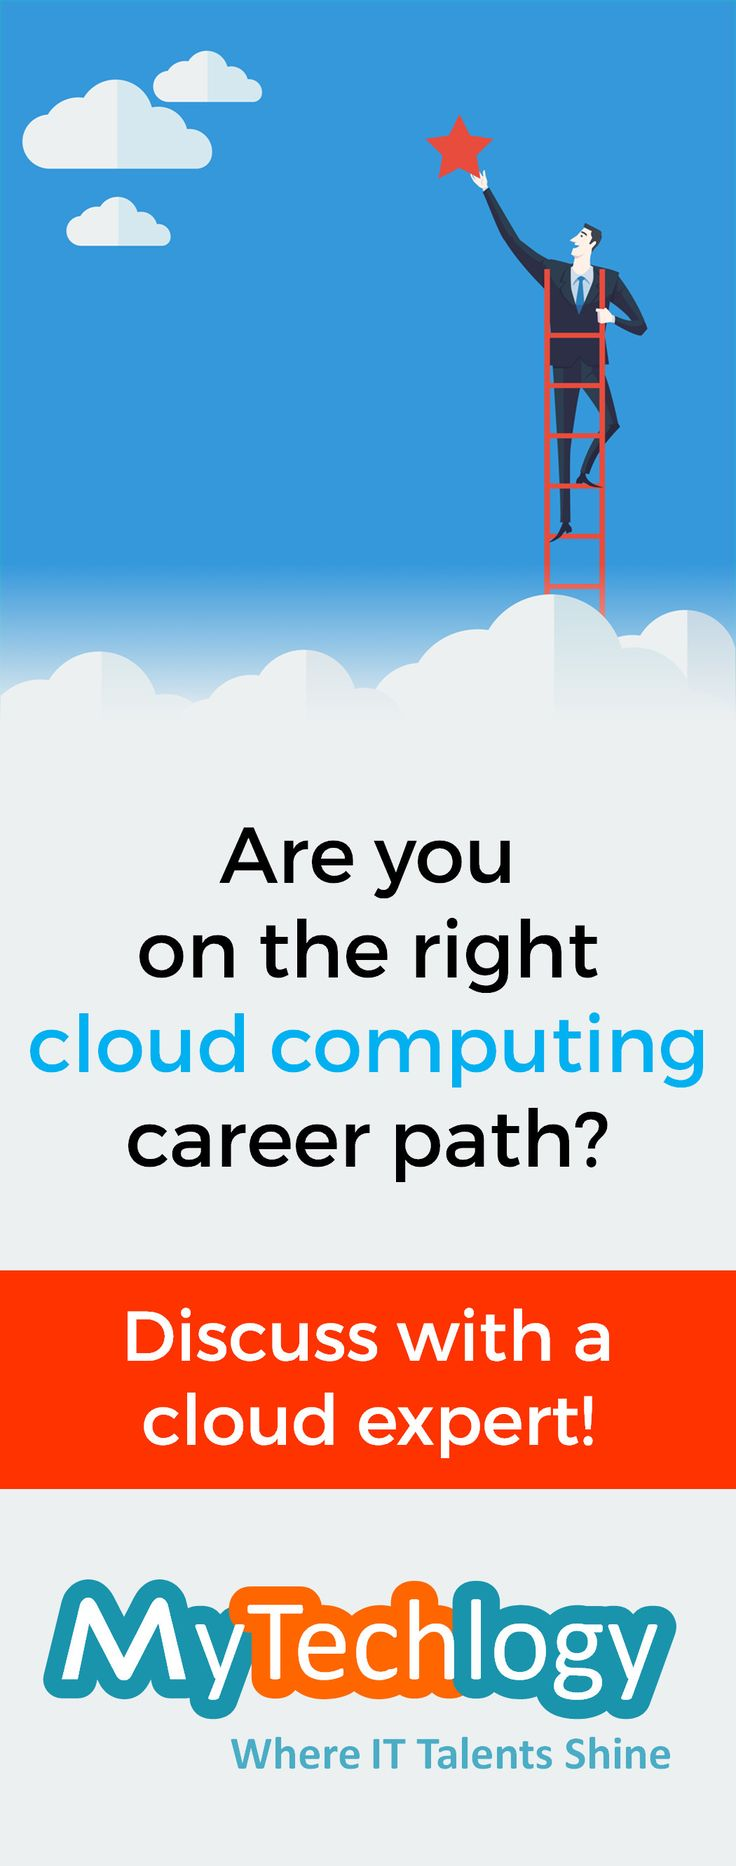 As the use of cloud computing increases within companies, jobs with cloud skills also emerge. Are you on the right cloud career path? MyTechLogy brings you an opportunity to discuss your career progression, cloud certifications, interview preparation etc., with a cloud expert.  #cloud #cloudcomputing #career #careerpath